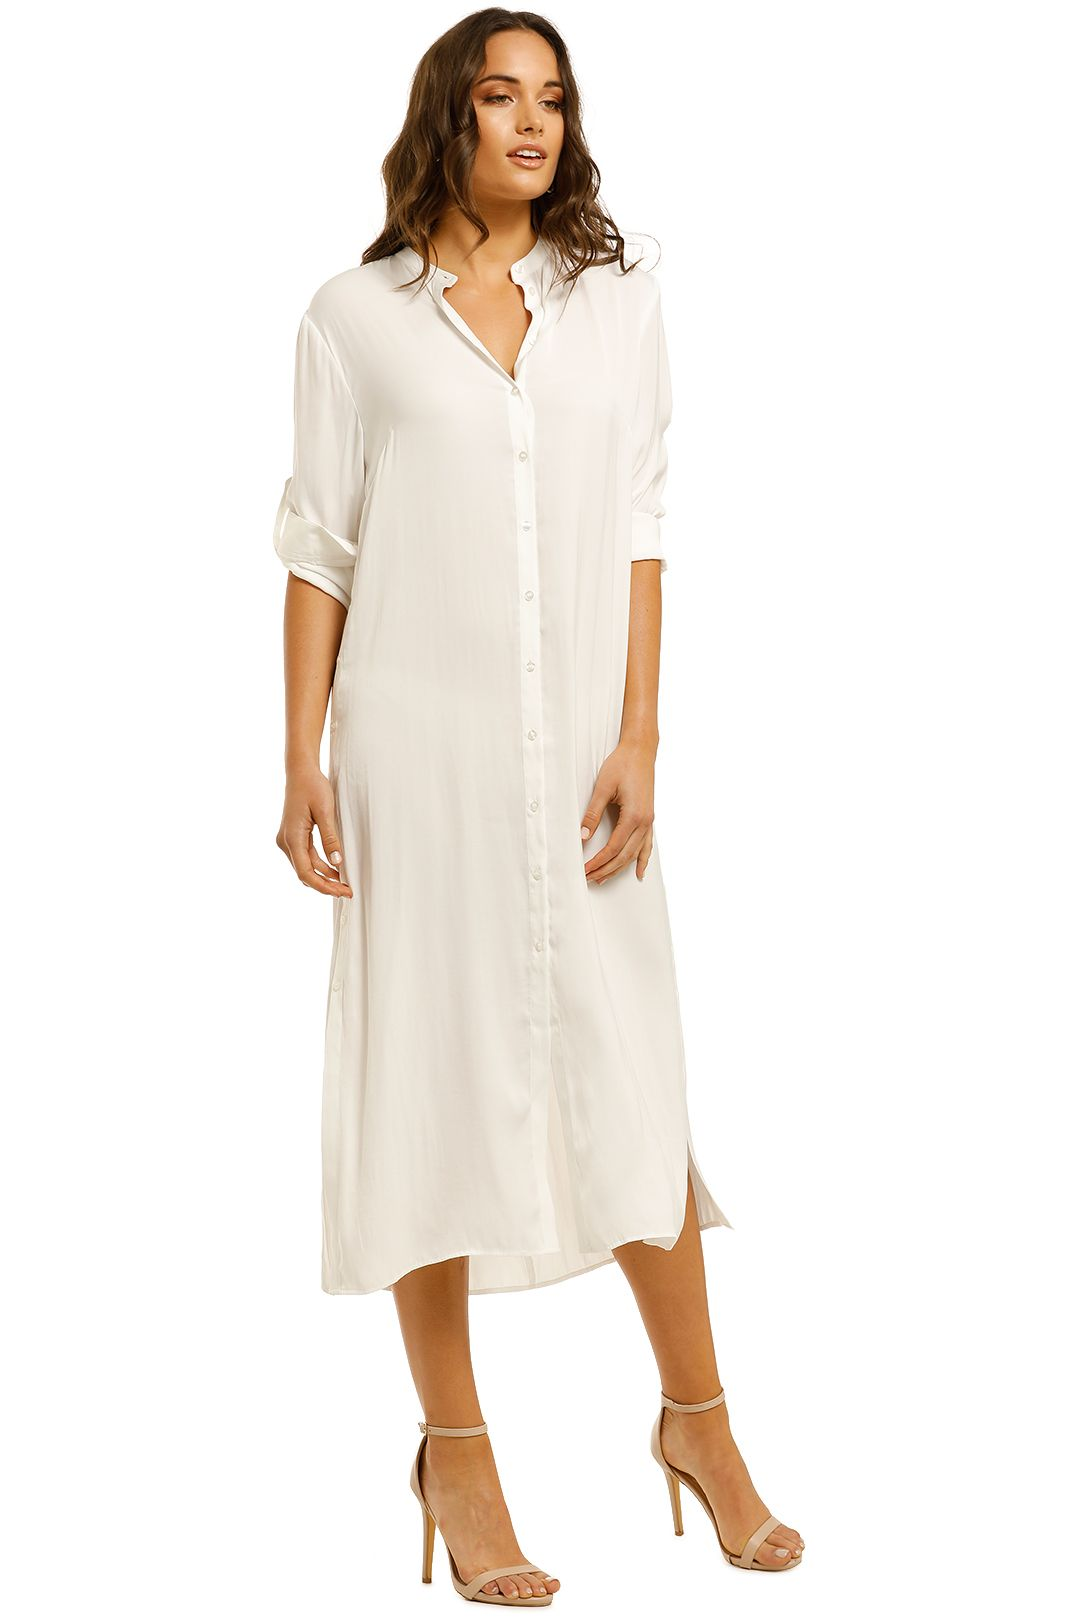 Grace-Willow-Ally-Shirt-Dress-White-Side